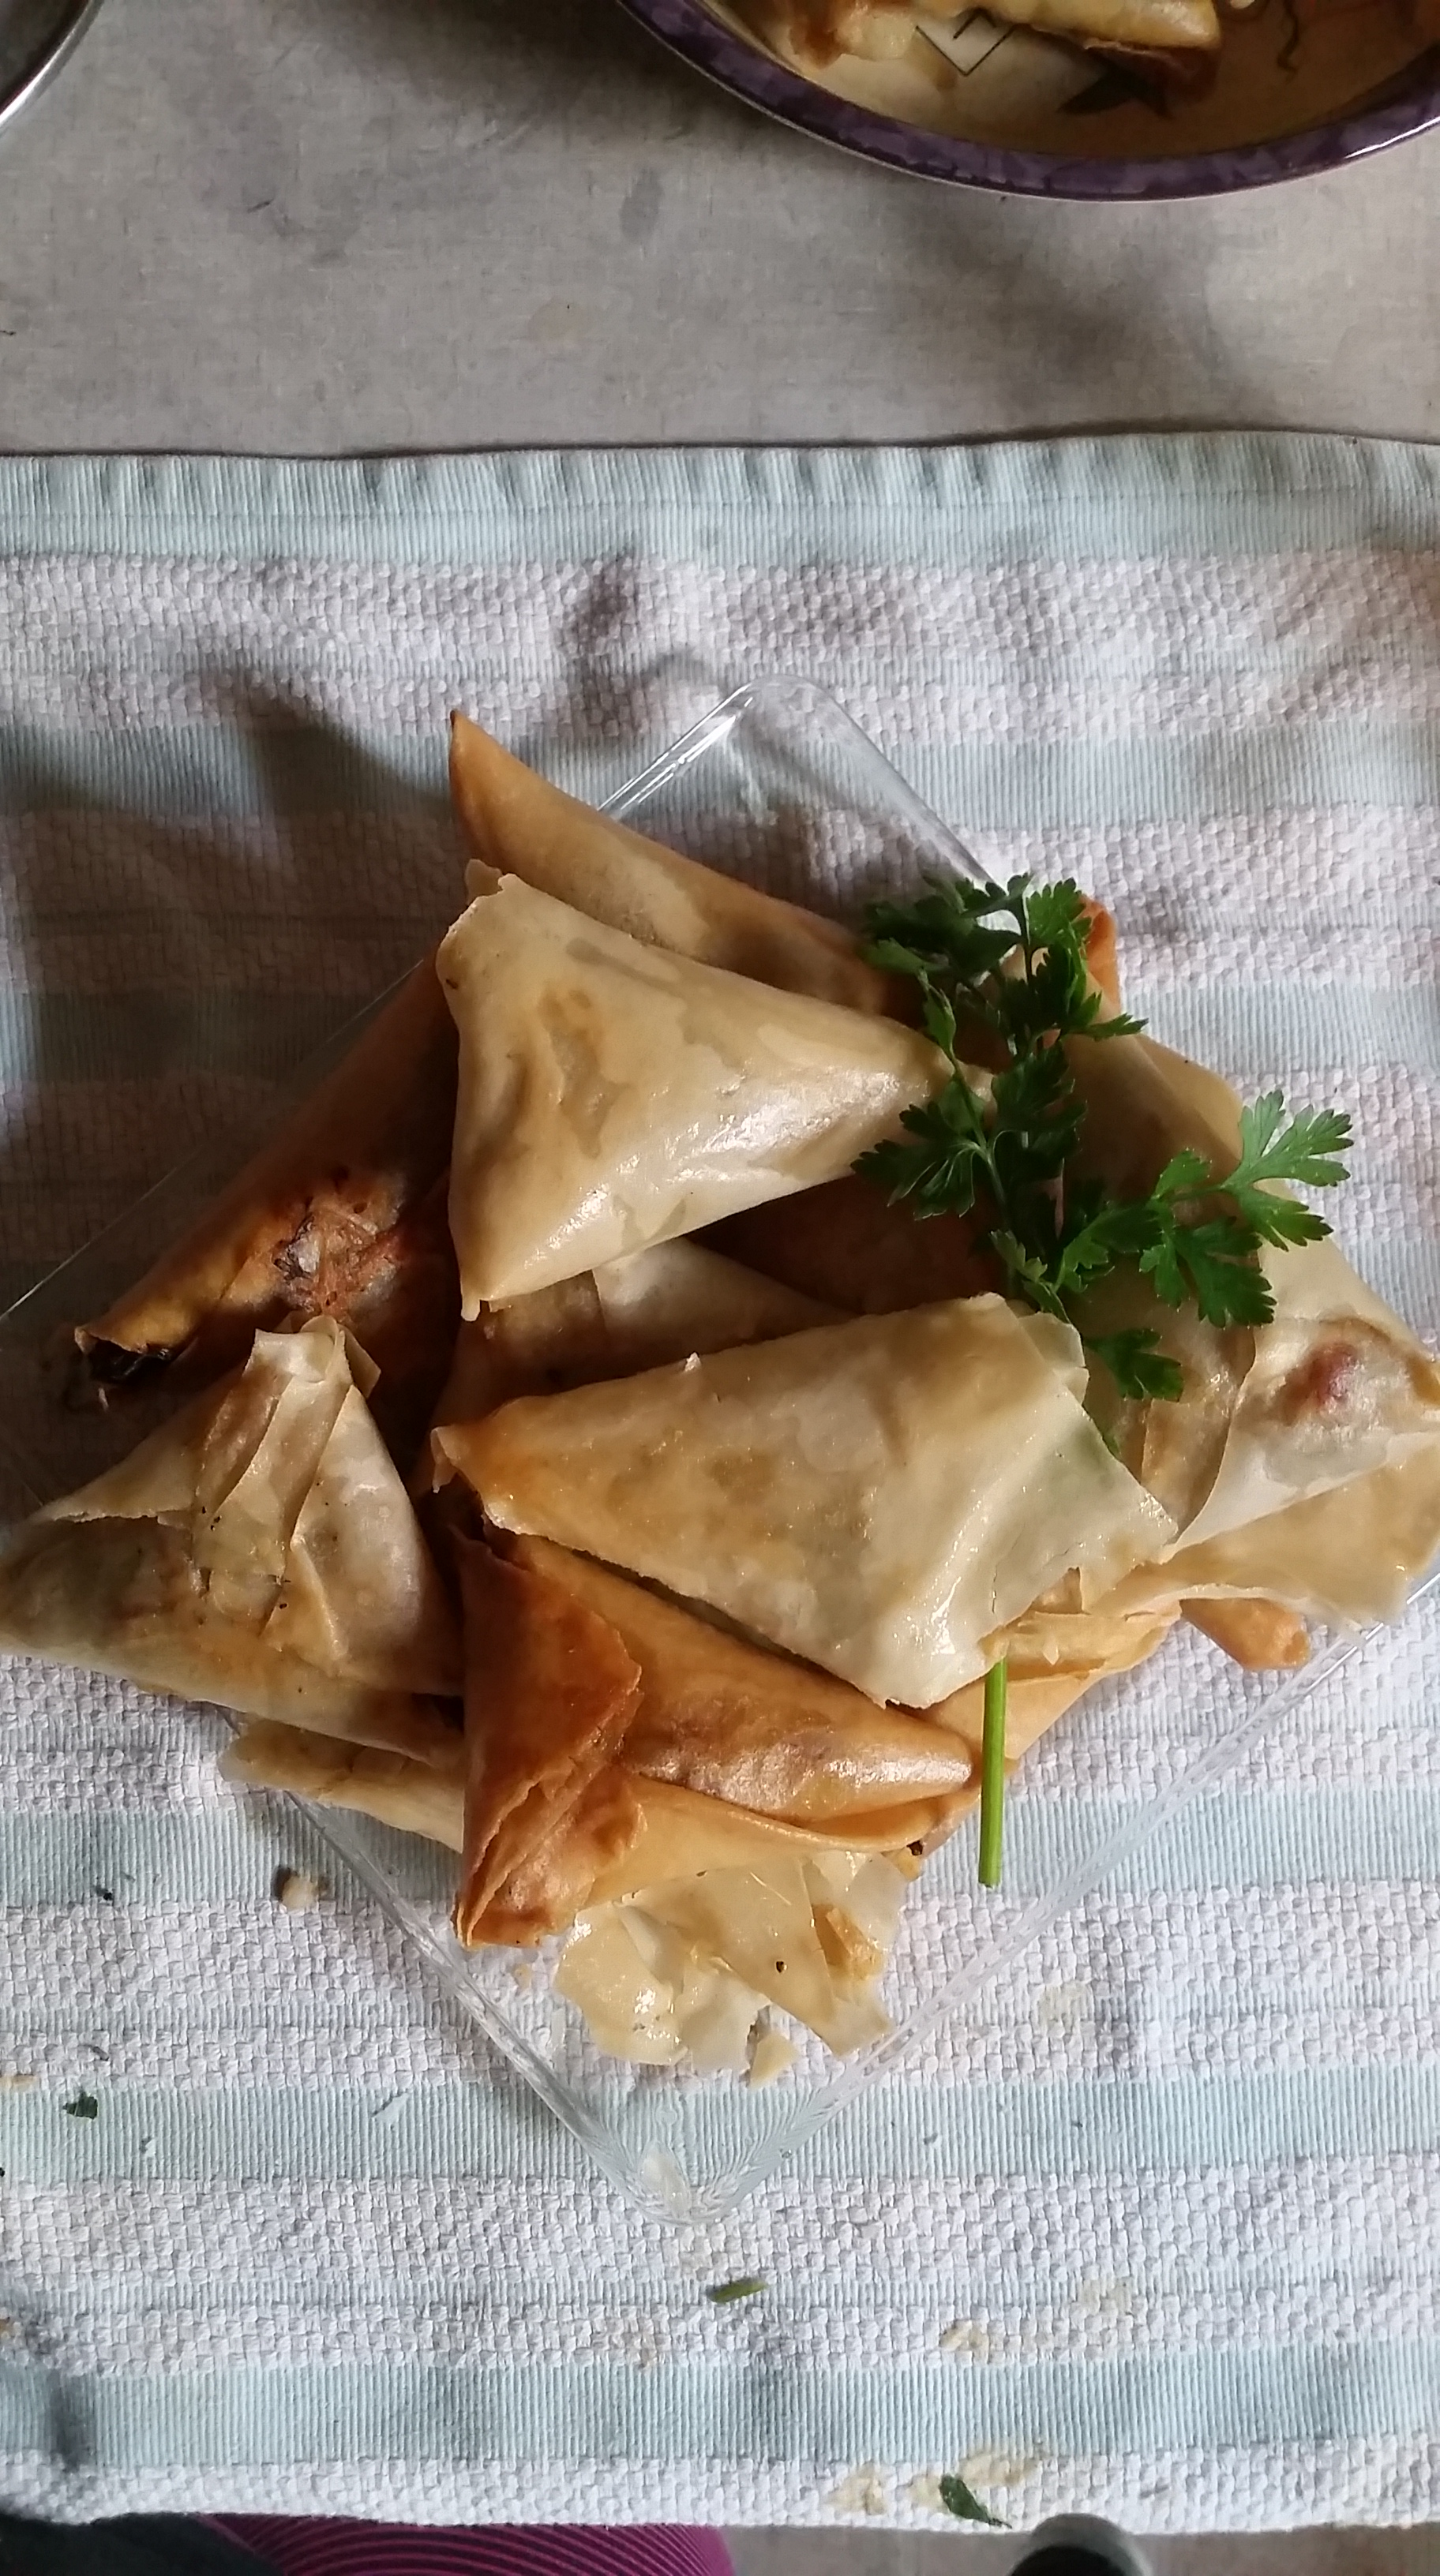 African samosas interdependence in community farm and hearth download the recipe pdf here 20140911183614 forumfinder Choice Image